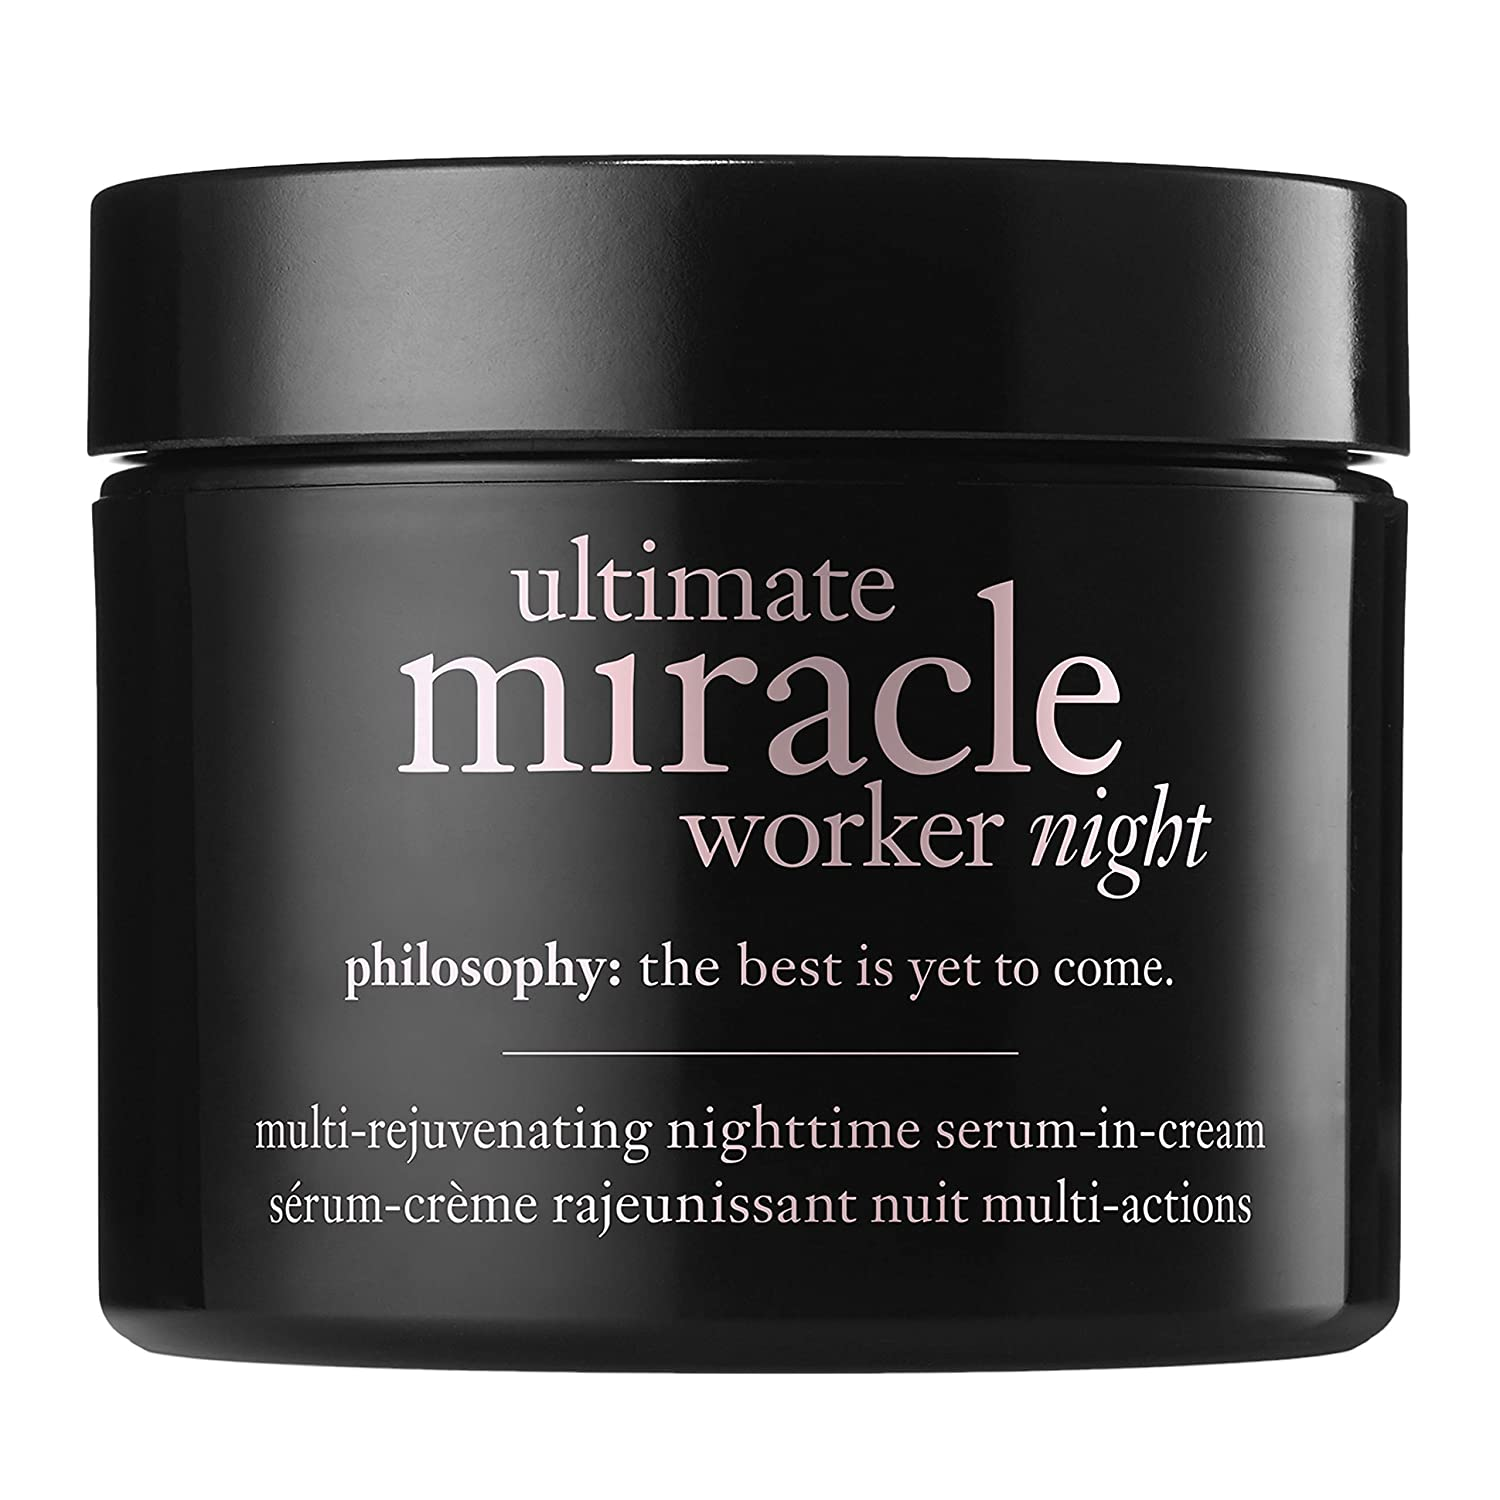 philosophy ultimate miracle worker night cream, 2 oz